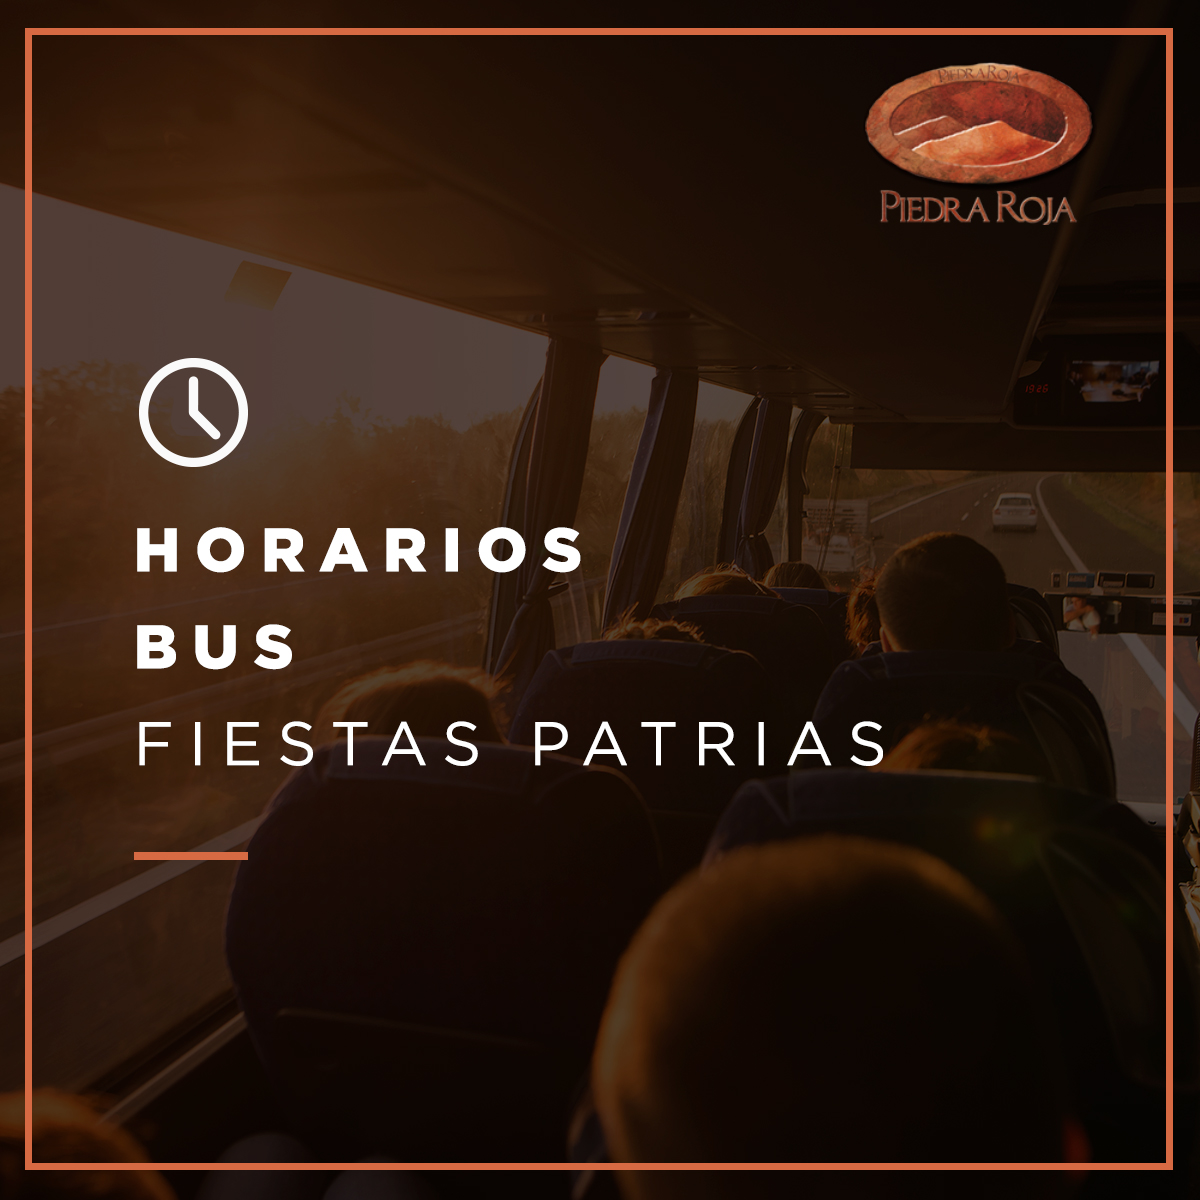 POST-WEB_PR_FIESTAS-PATRIAS_HORARIOSBUS